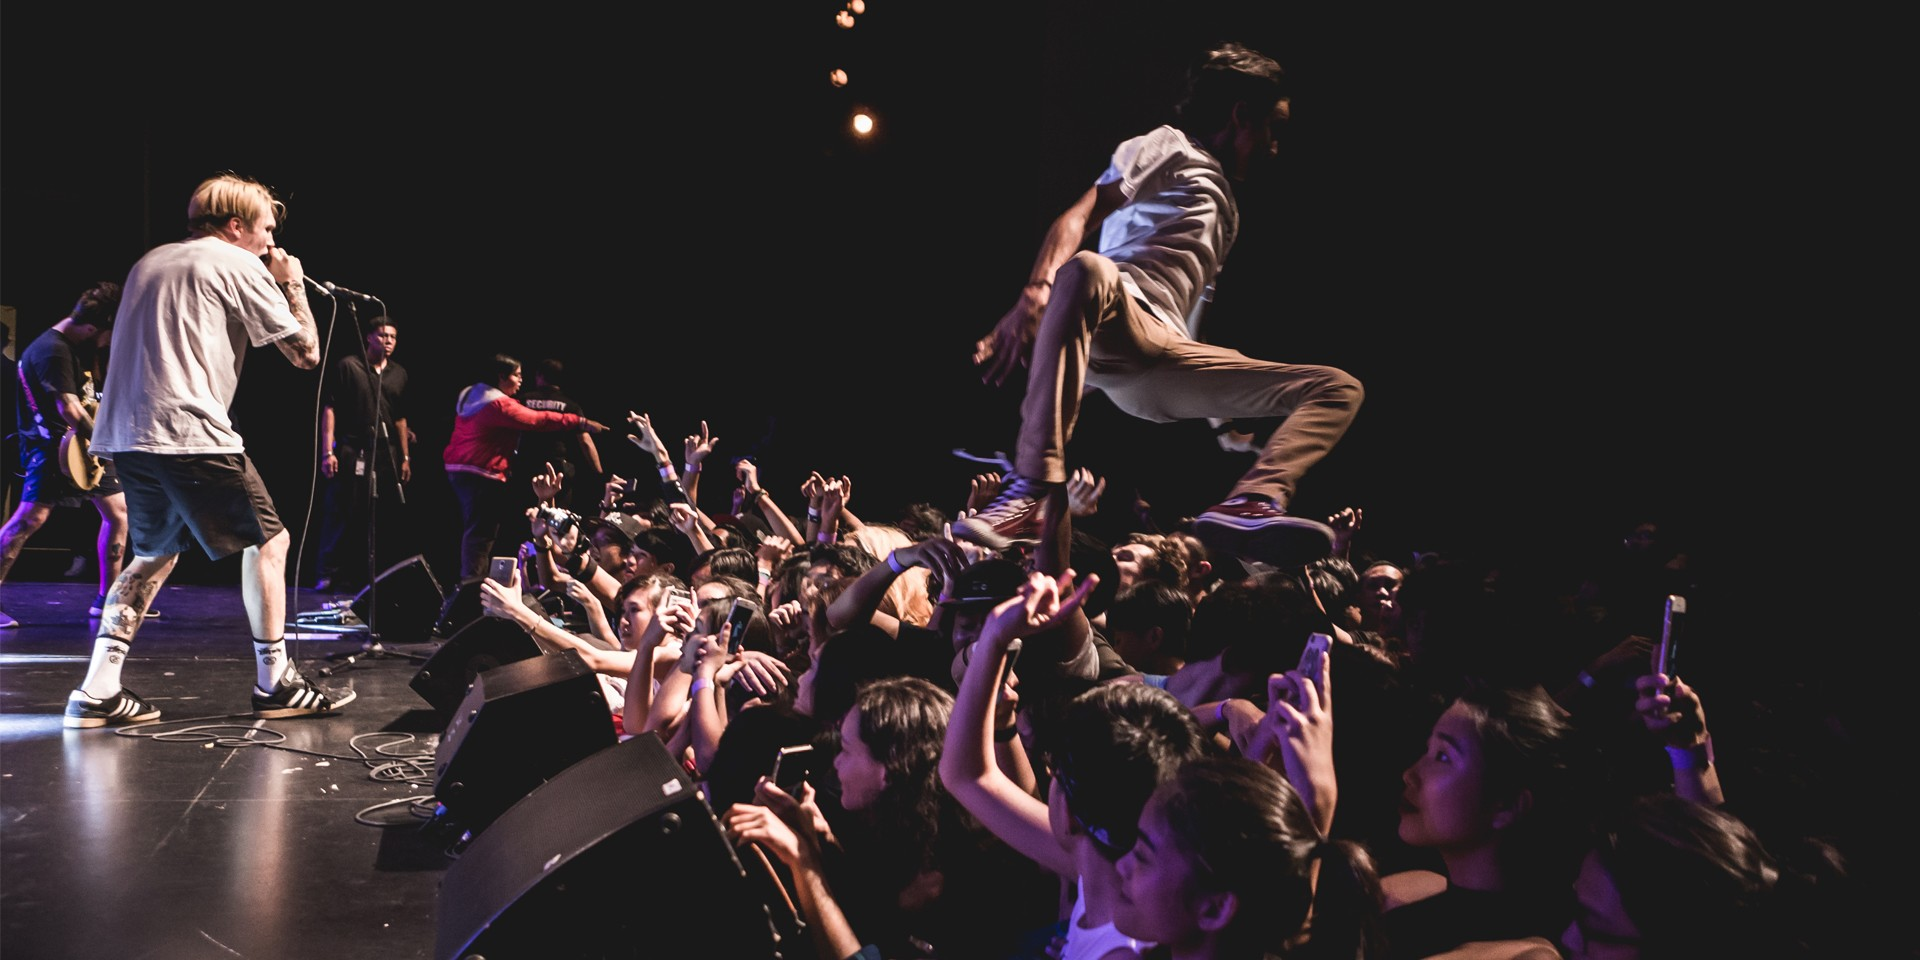 """GIG REPORT: Neck Deep scores remarkable highs with good ol' """"posi vibes"""""""